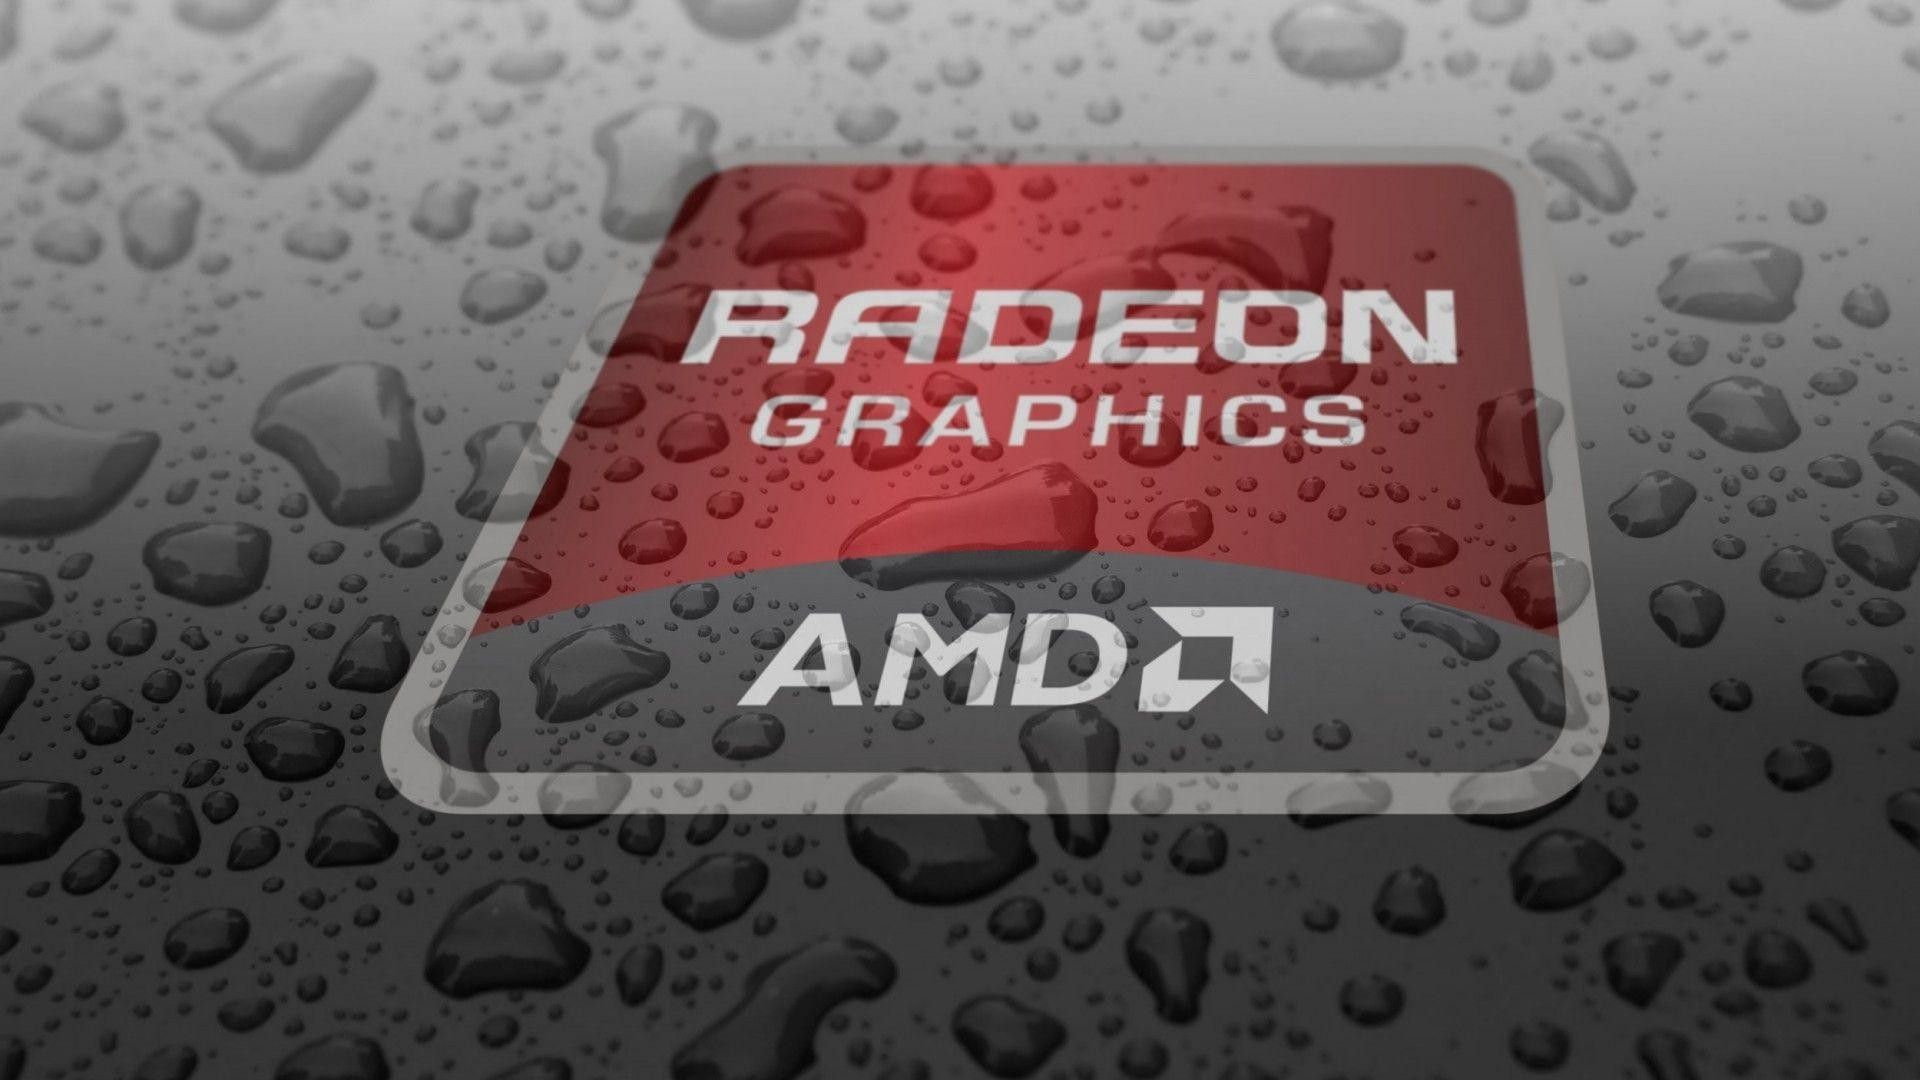 Pin By Carlos John On Amd Baby In 2019 Wallpaper Computer